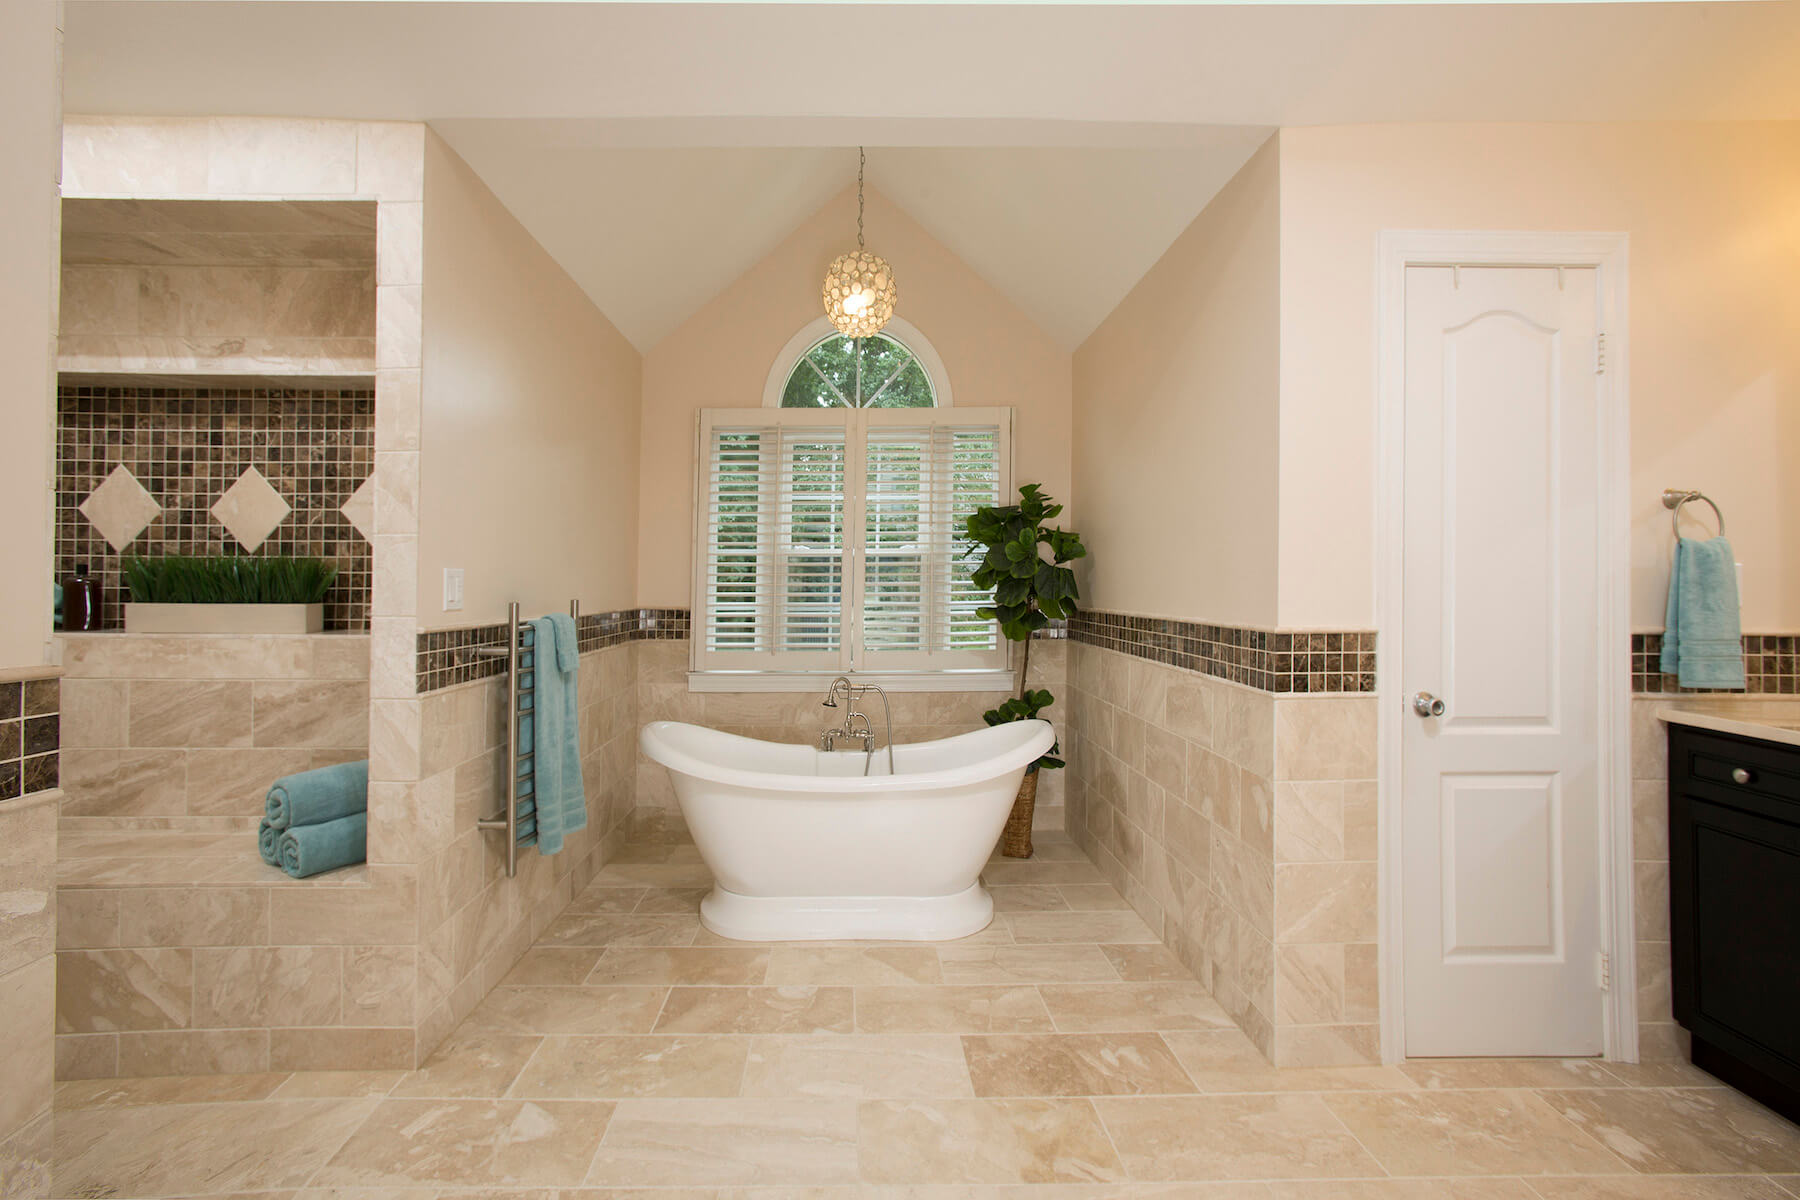 Bathroom_9-1-17_113 - Copy